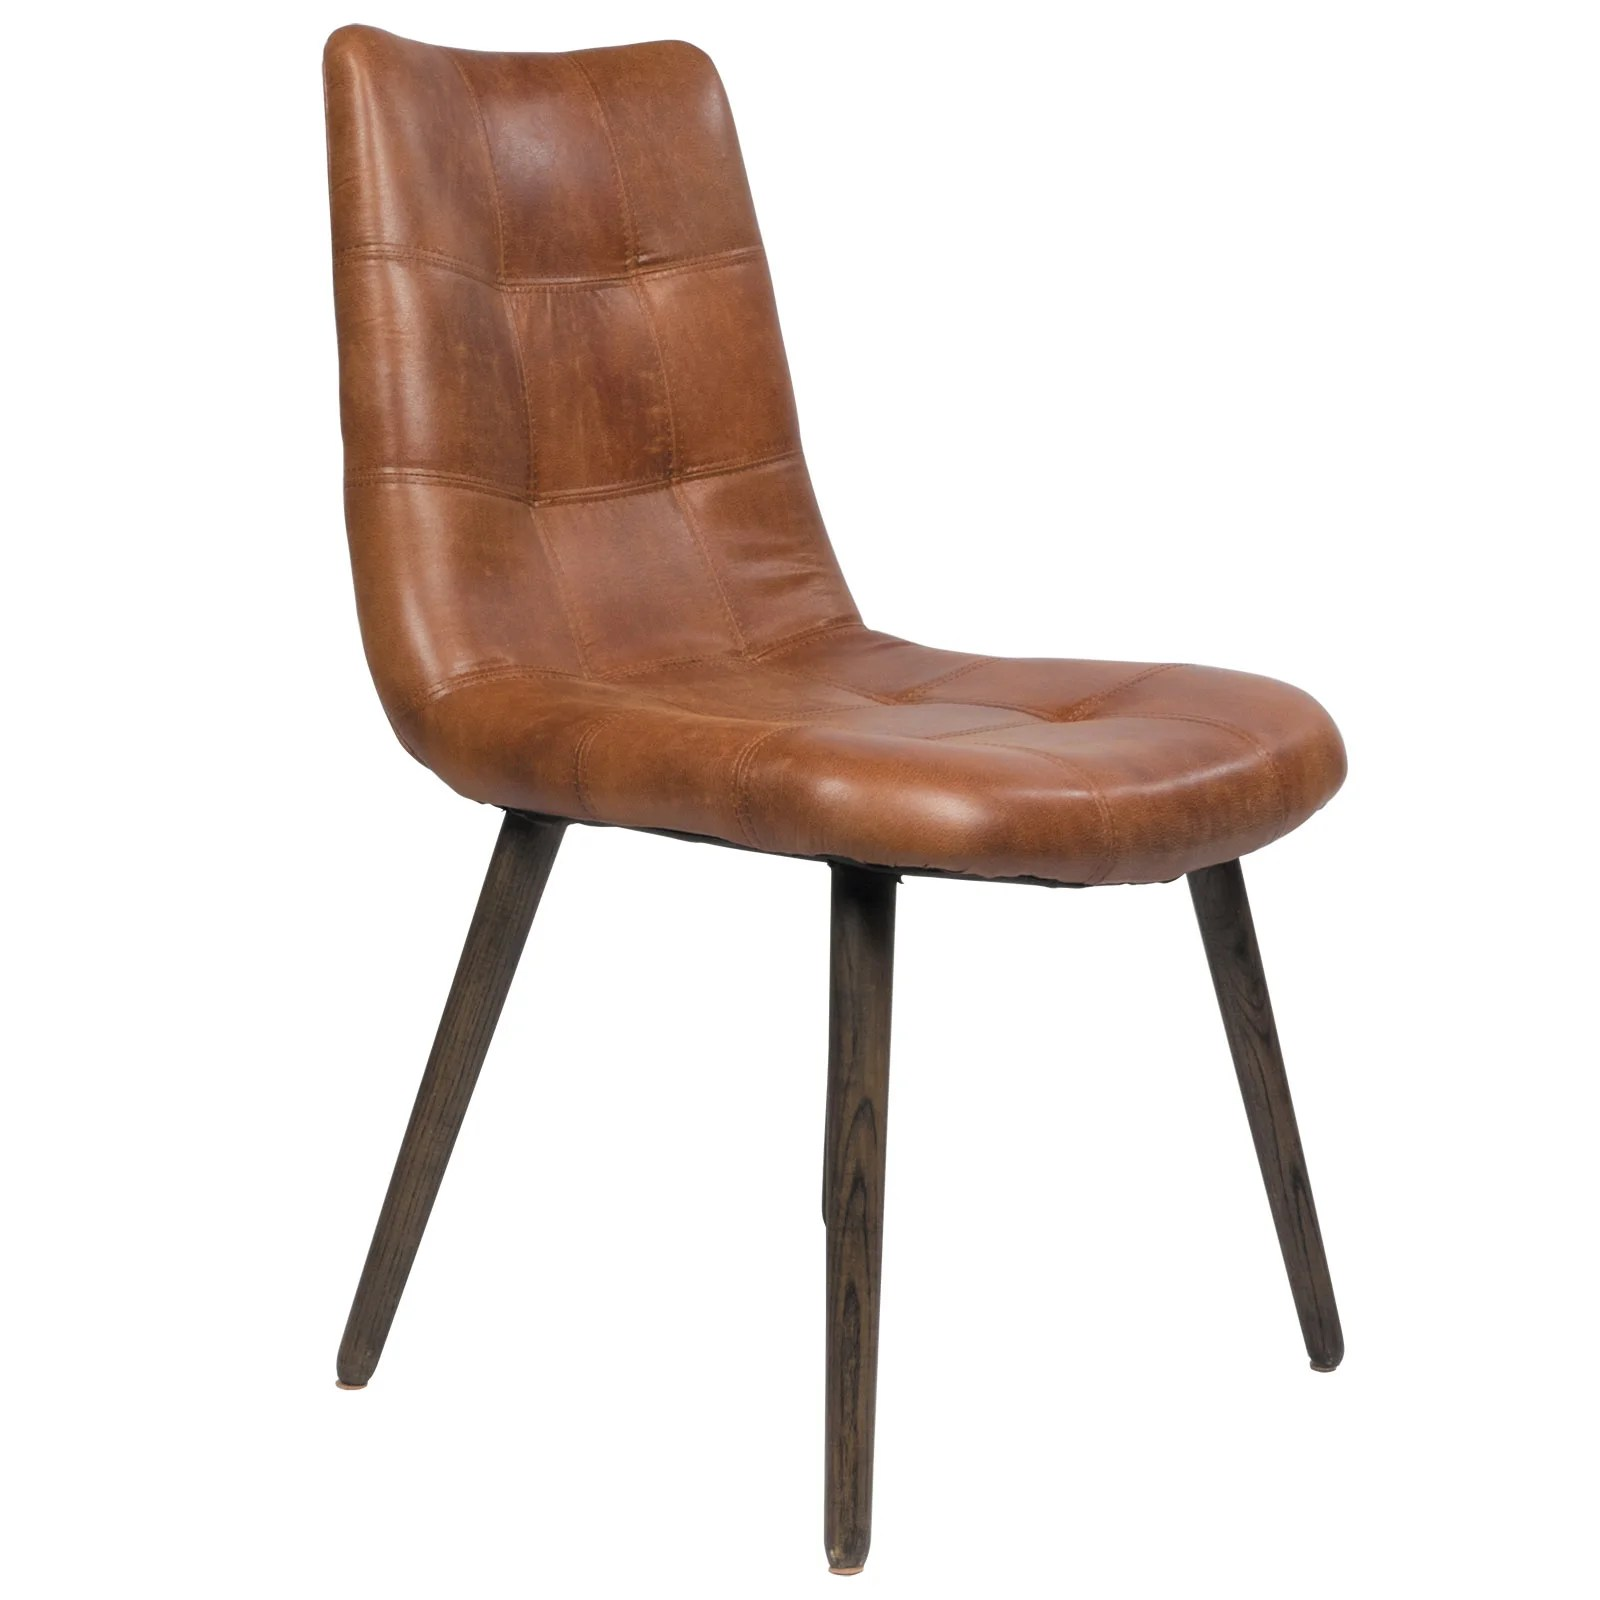 leather tufted dining chair cheap white desk alamo side wayfair